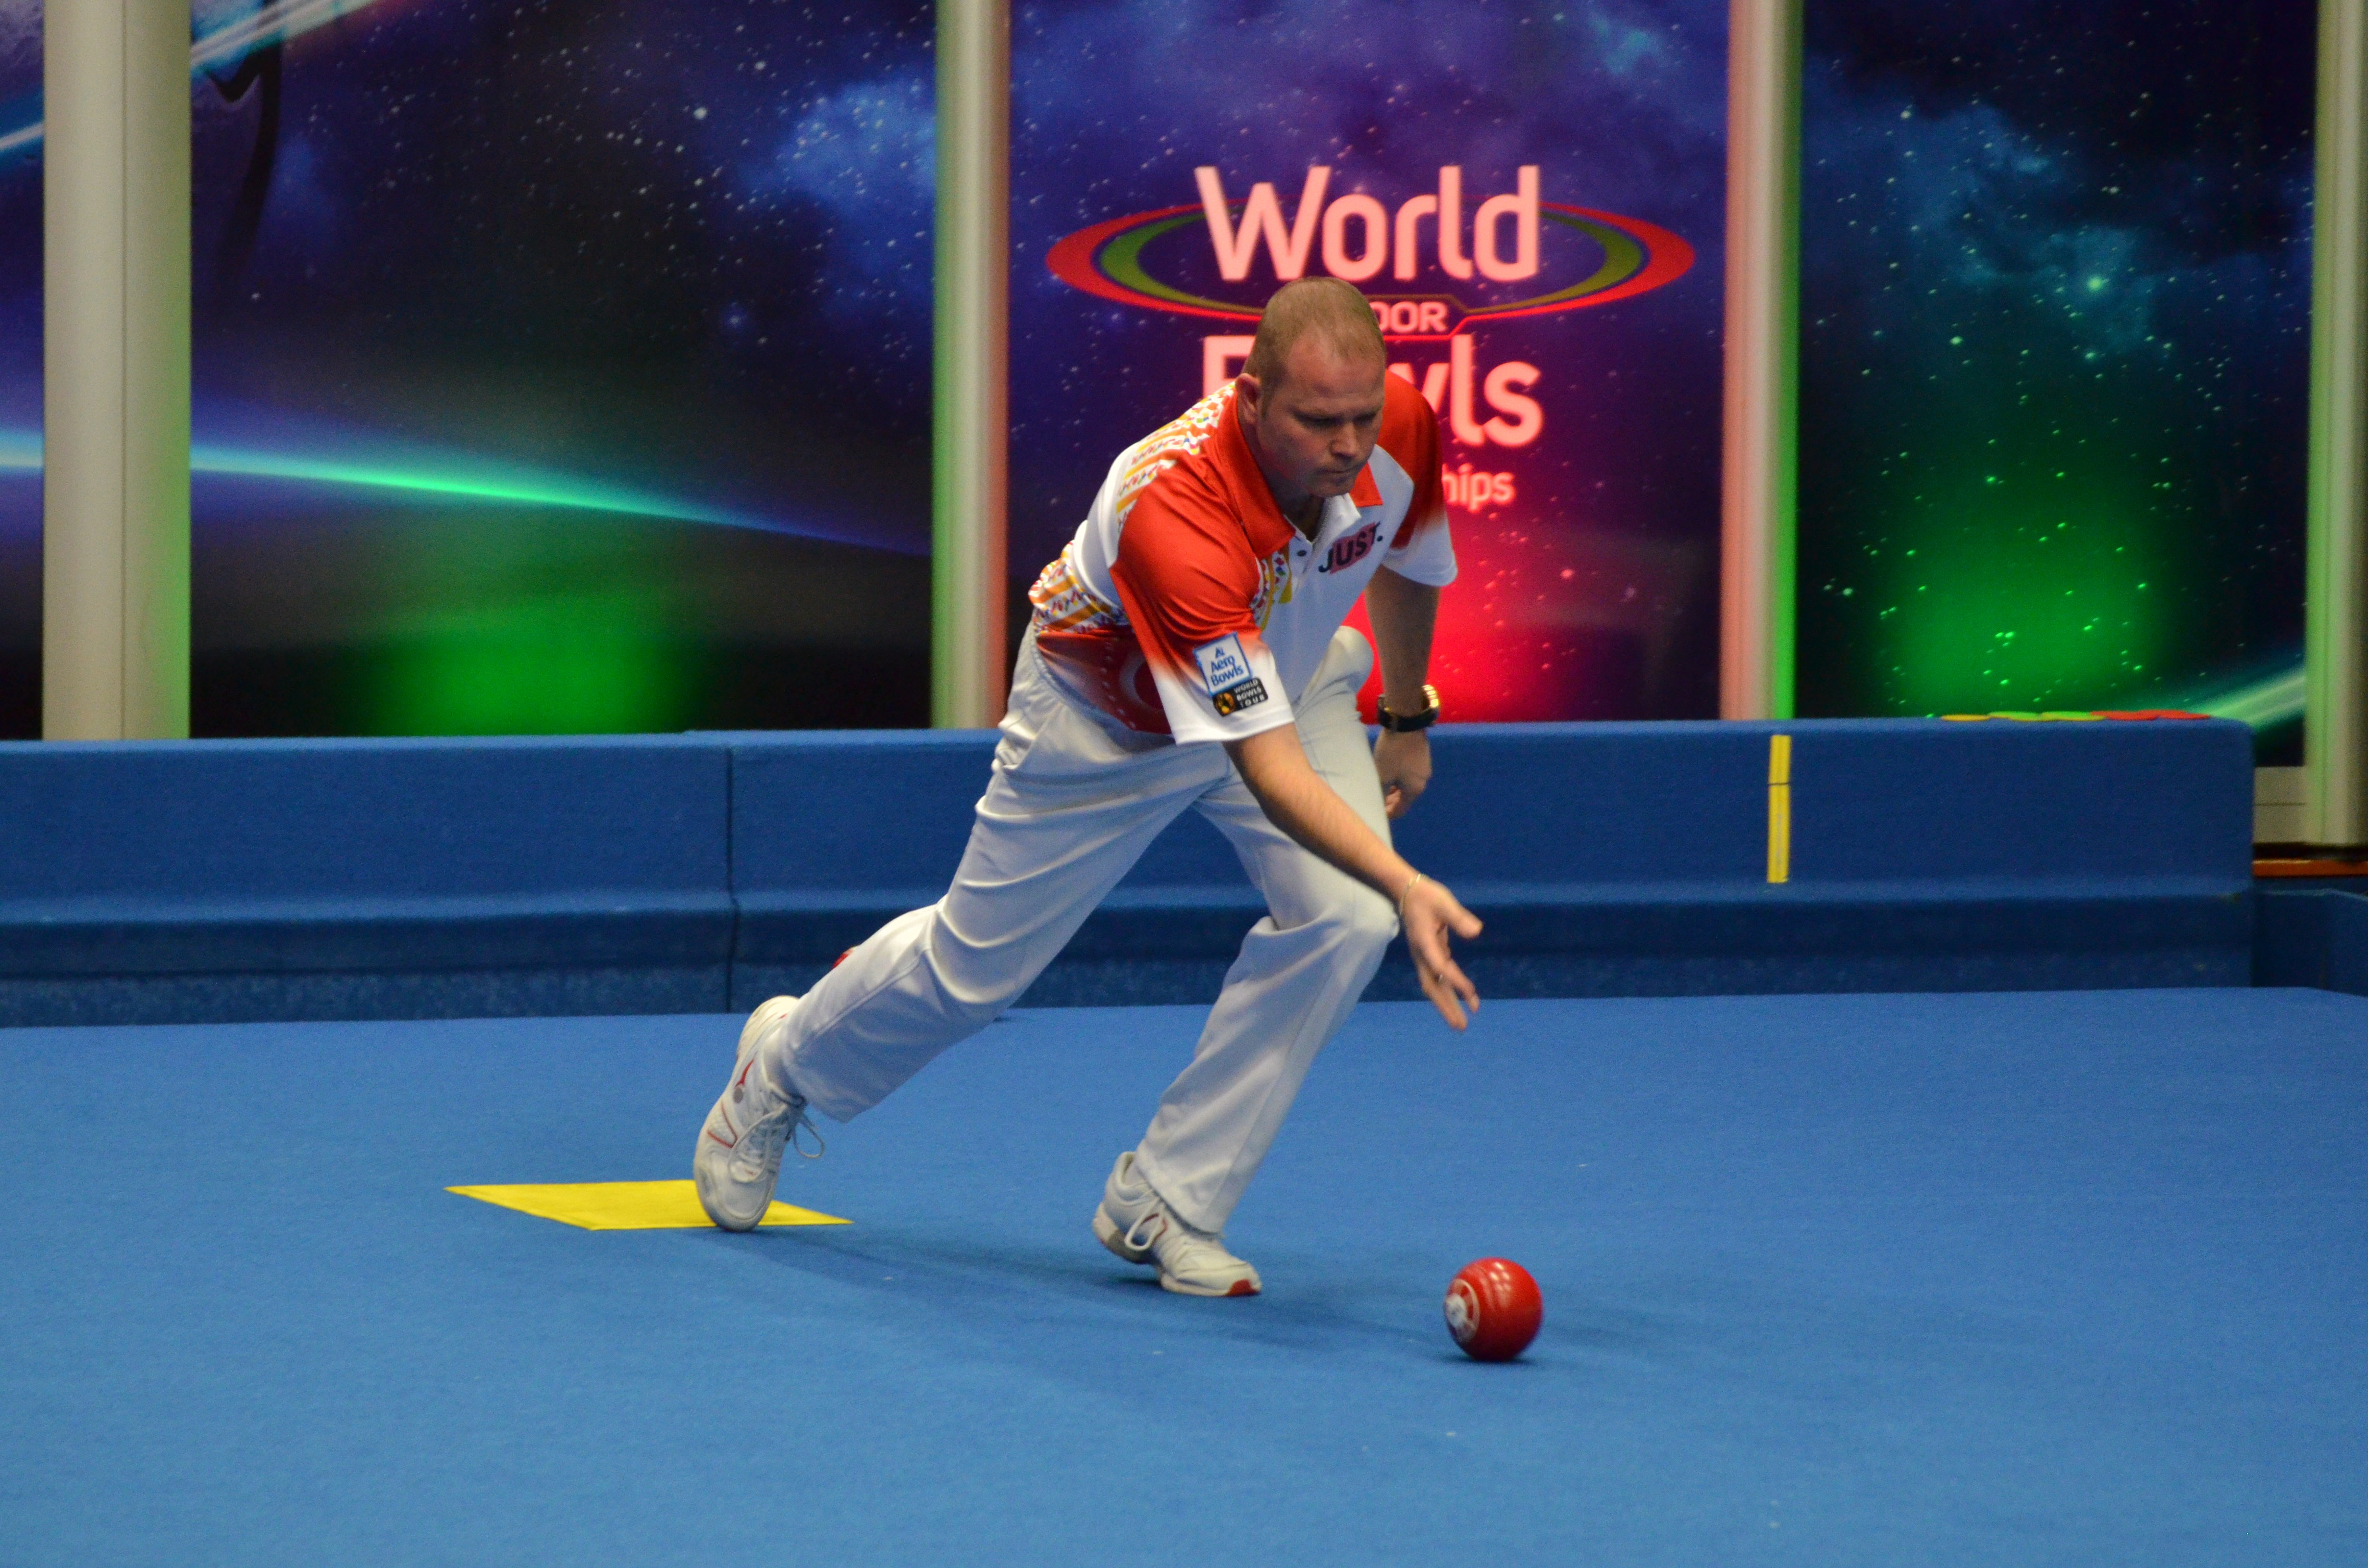 WATCH: The Secret to Control Weight Delivering Lawn Bowls